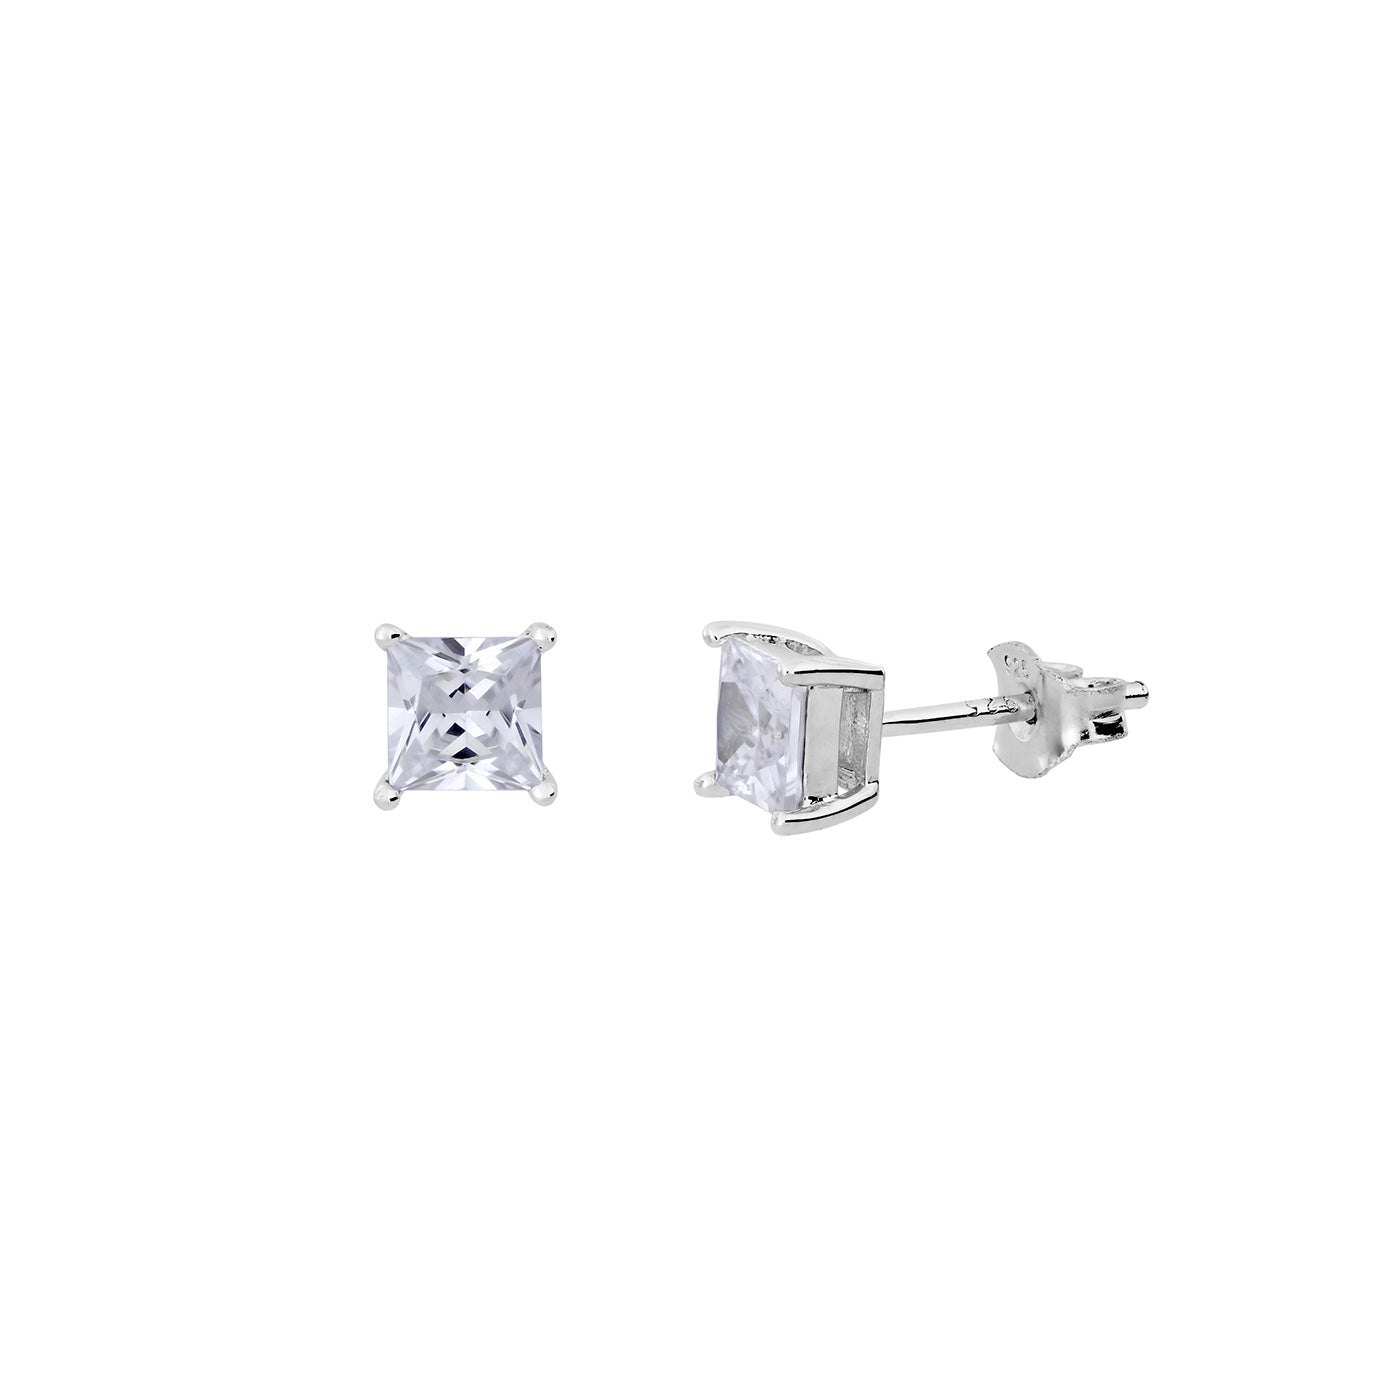 SQUARE PRINCESS CUT CZ CLAW STUD EARRINGS 5MM